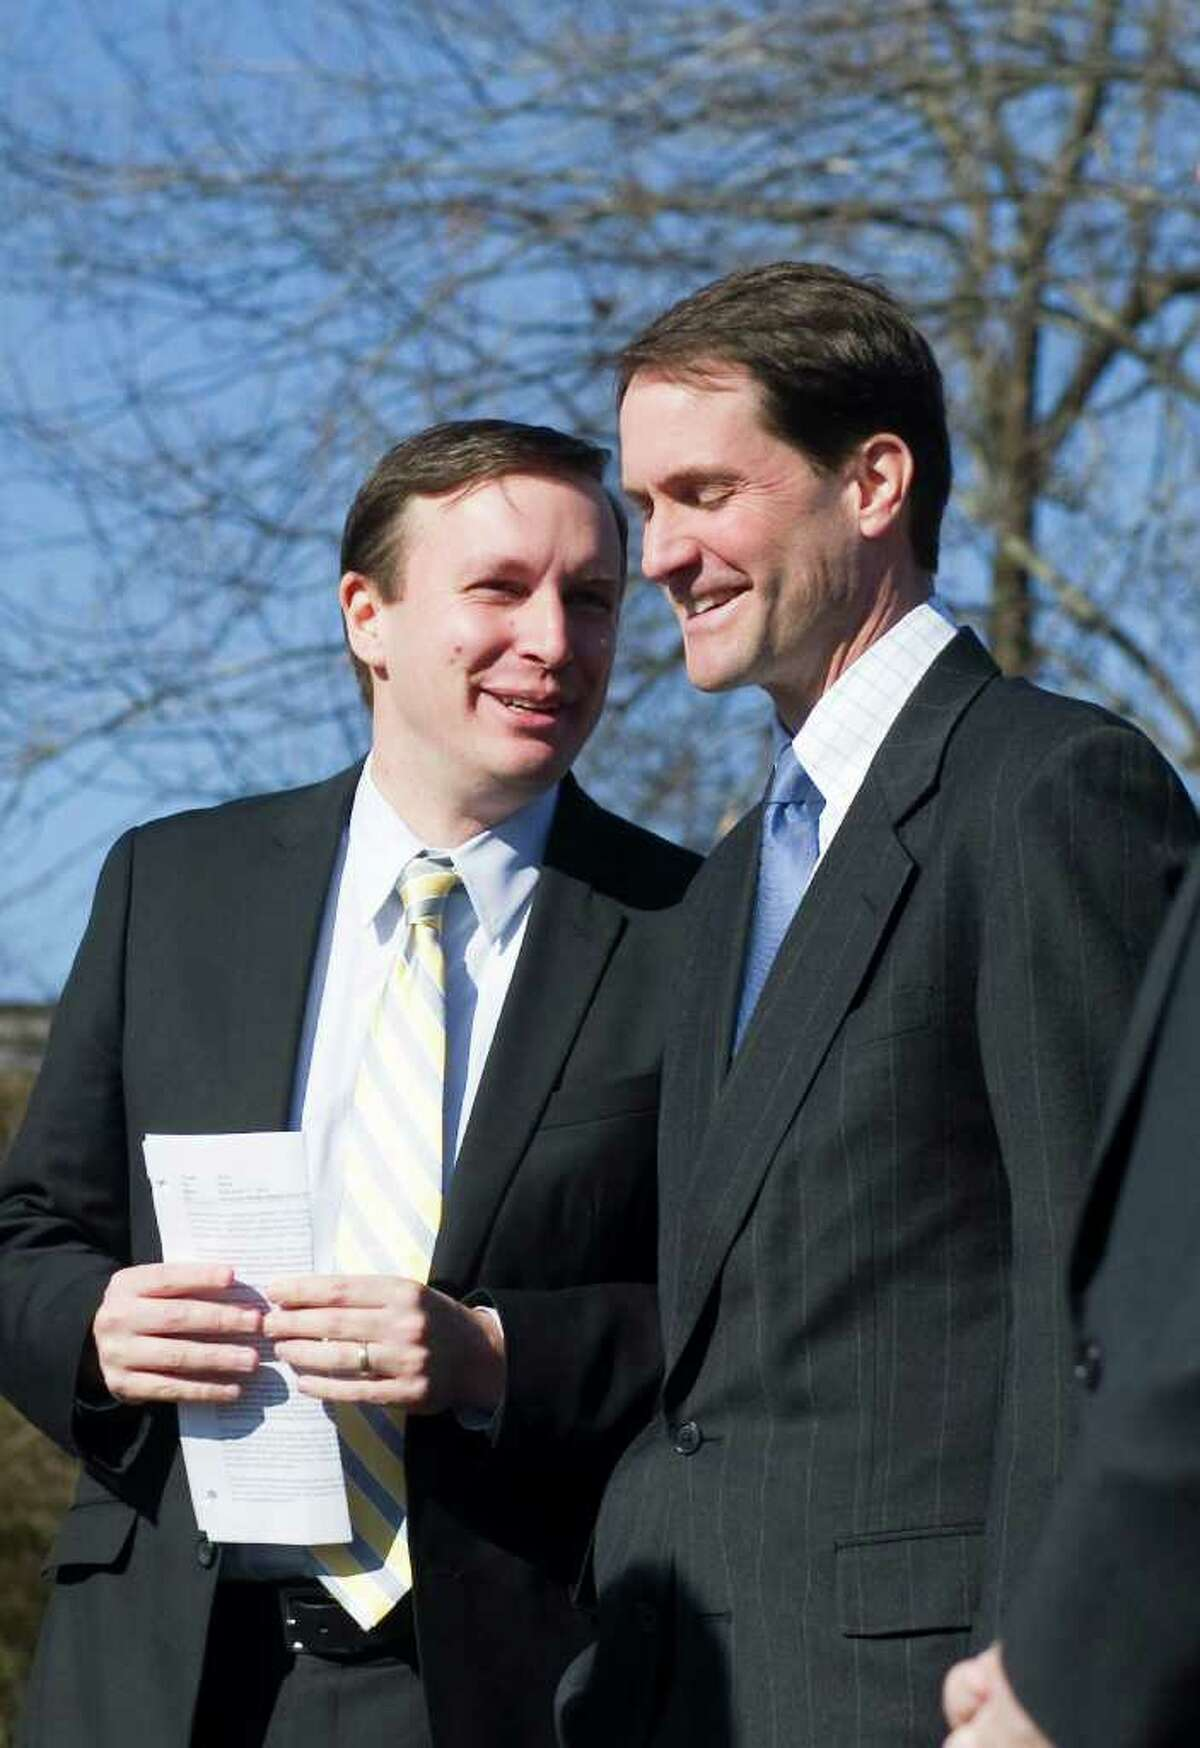 Congressmen Jim Himes and Chris Murphy chat during a press conference in Westport, Conn., February 20, 2012 , to discuss the need to invest in transportation infrastructure. The press conference was held in a commuter lot off of I-95 on Saugatuck Avenue, the highway crosses over the avenue by way of a structurally deficient bridge.